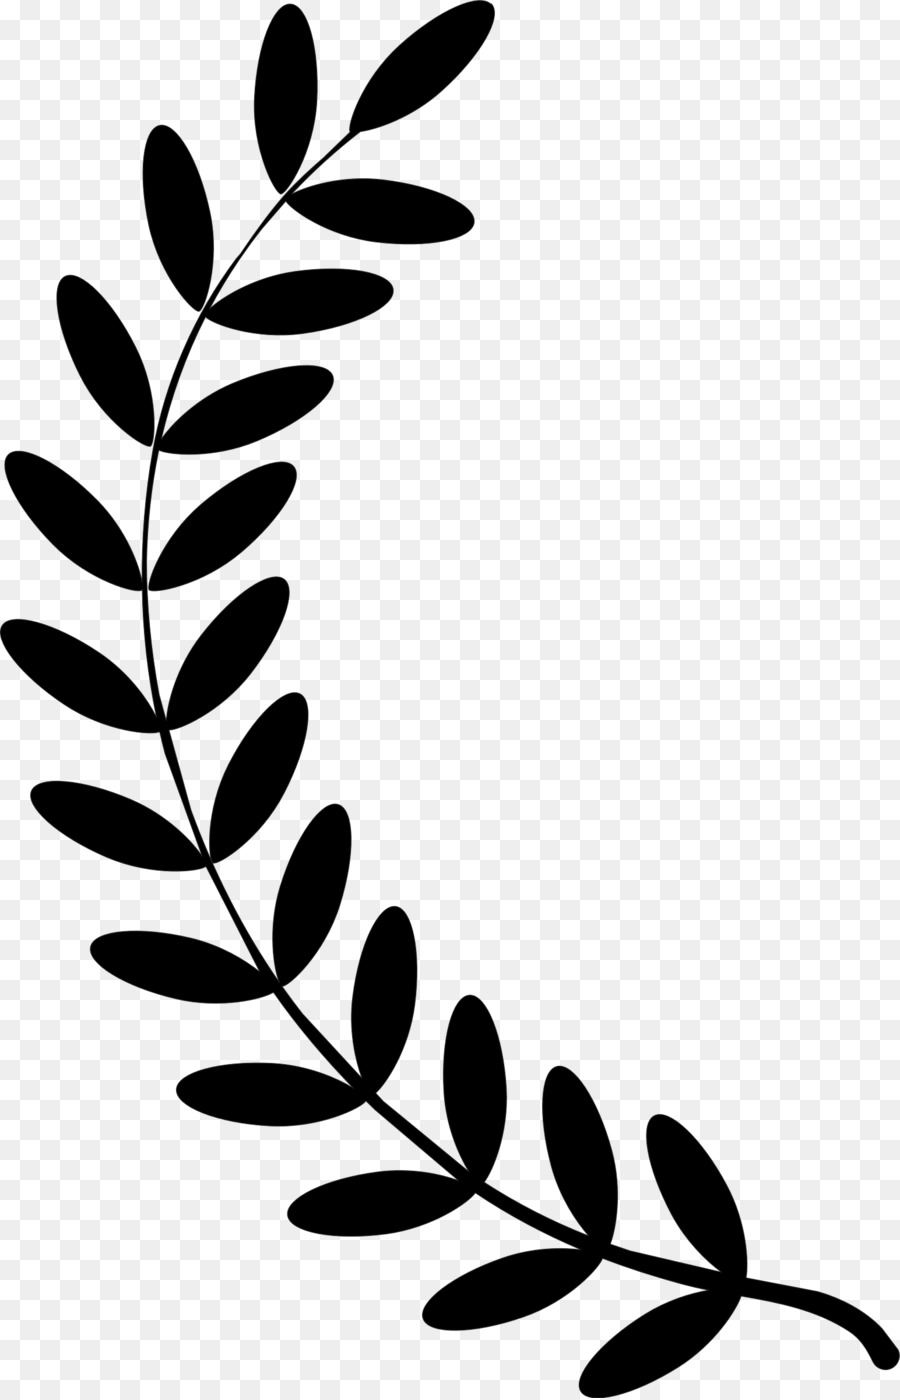 olive branch laurel wreath clip art laurel wreath images png rh kisspng com olive branch wreath clipart olive branch wreath clipart